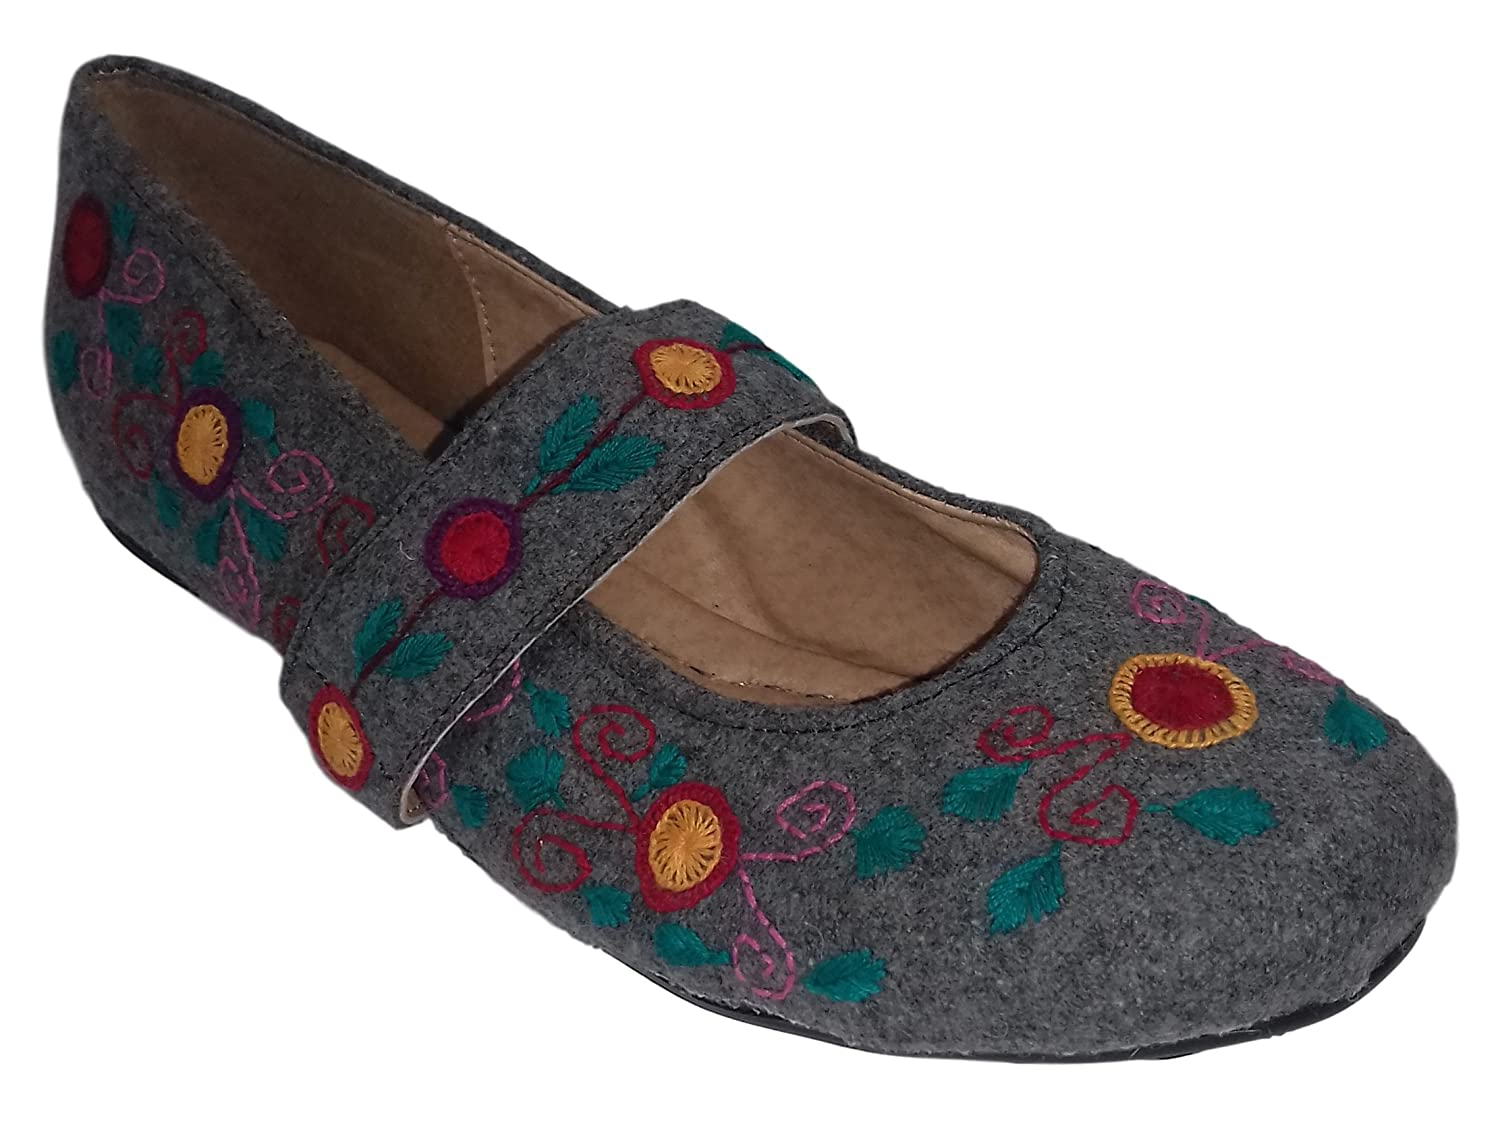 Mexican Handmade Shoes for Women, Mexican Handcraft, Embroidery from Chiapas